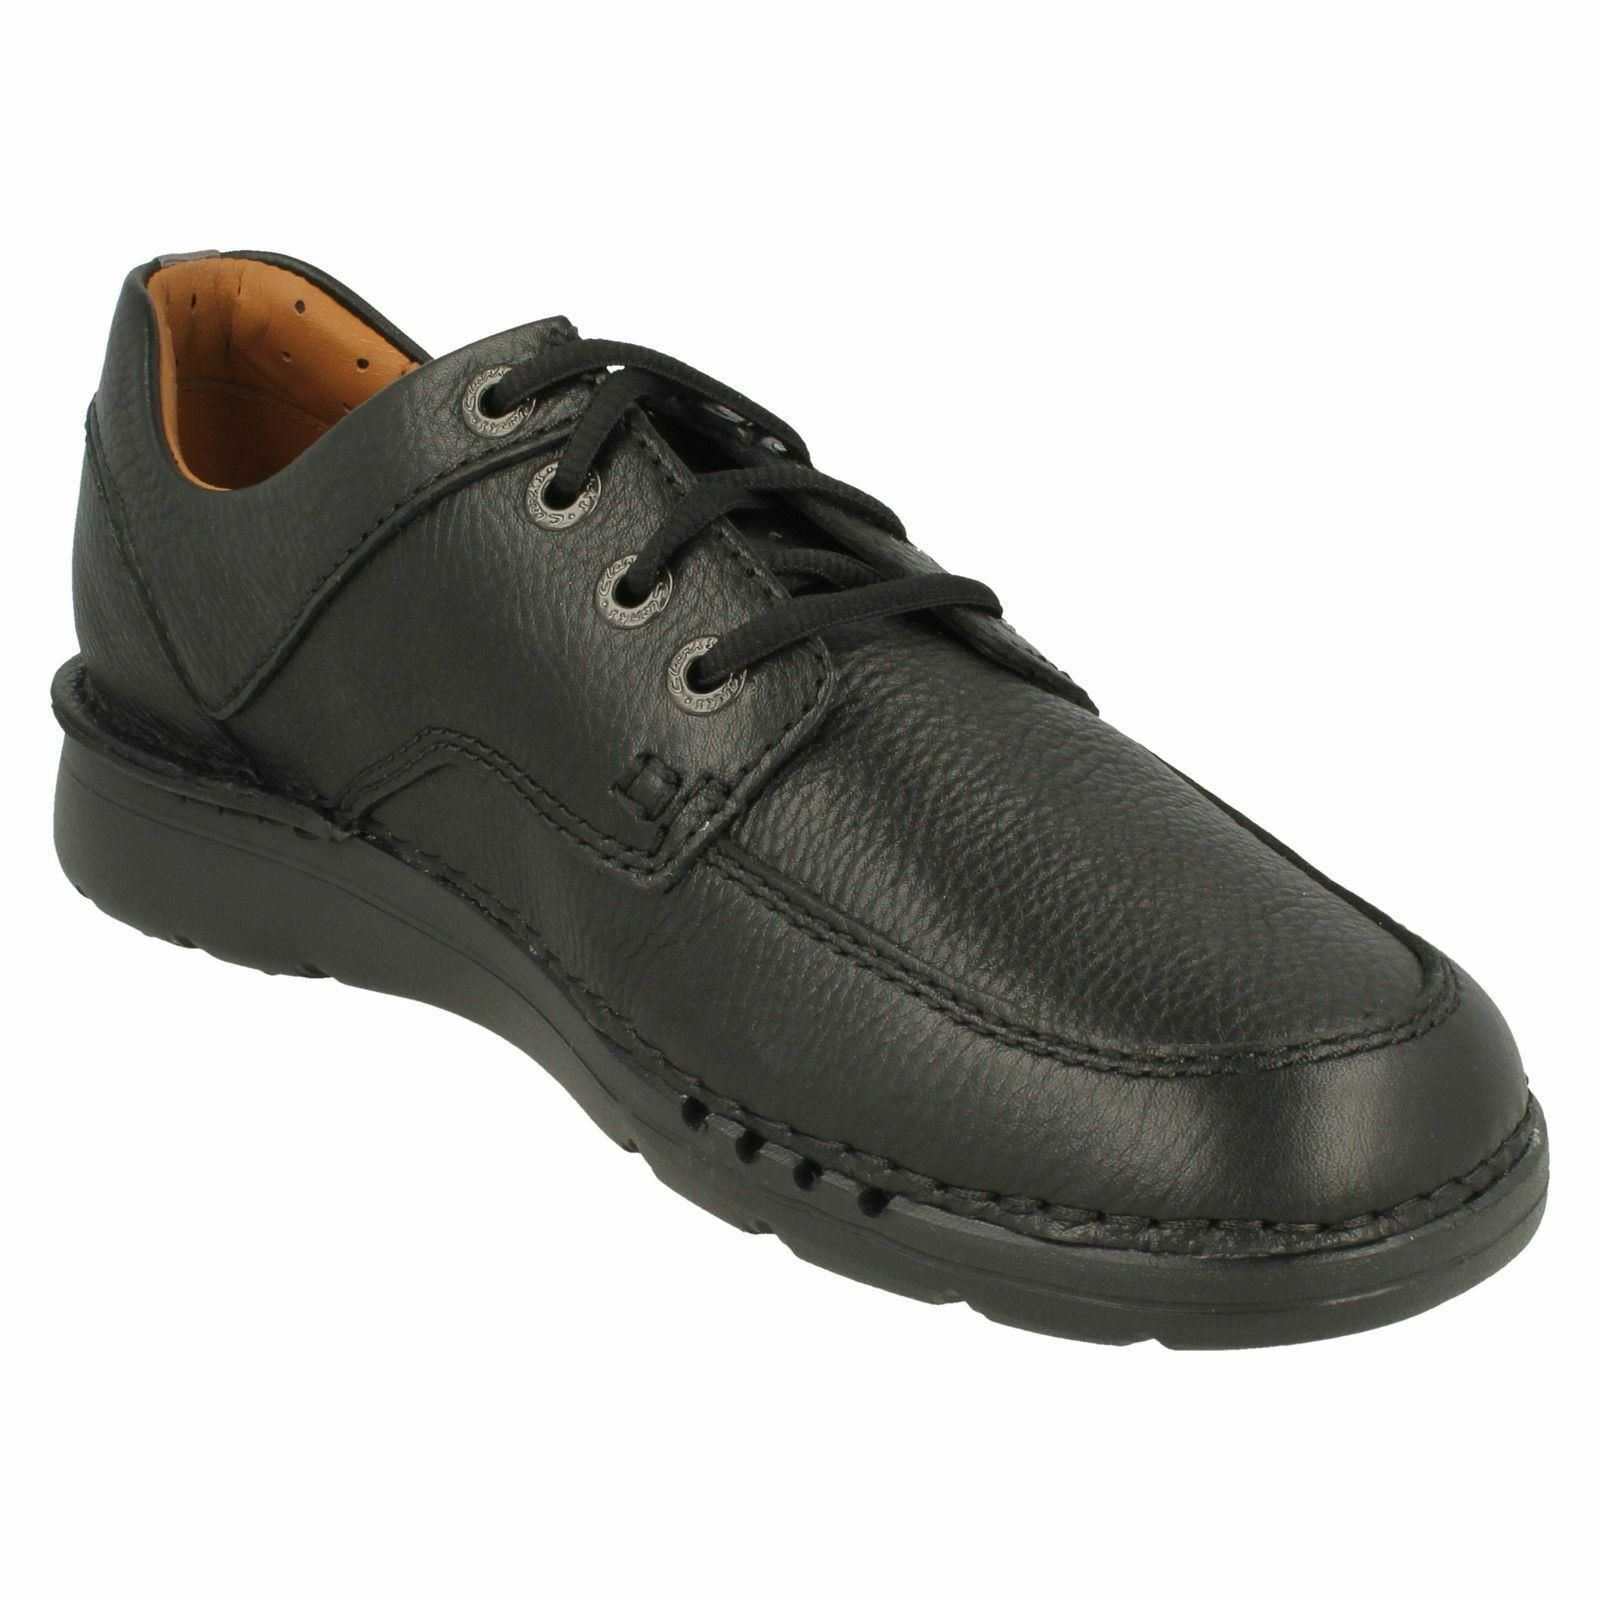 Uomo Clarks Aperti Unnature Scarpe Time Nero o Scarpe Unnature Stringate in pelle Marrone 93f031